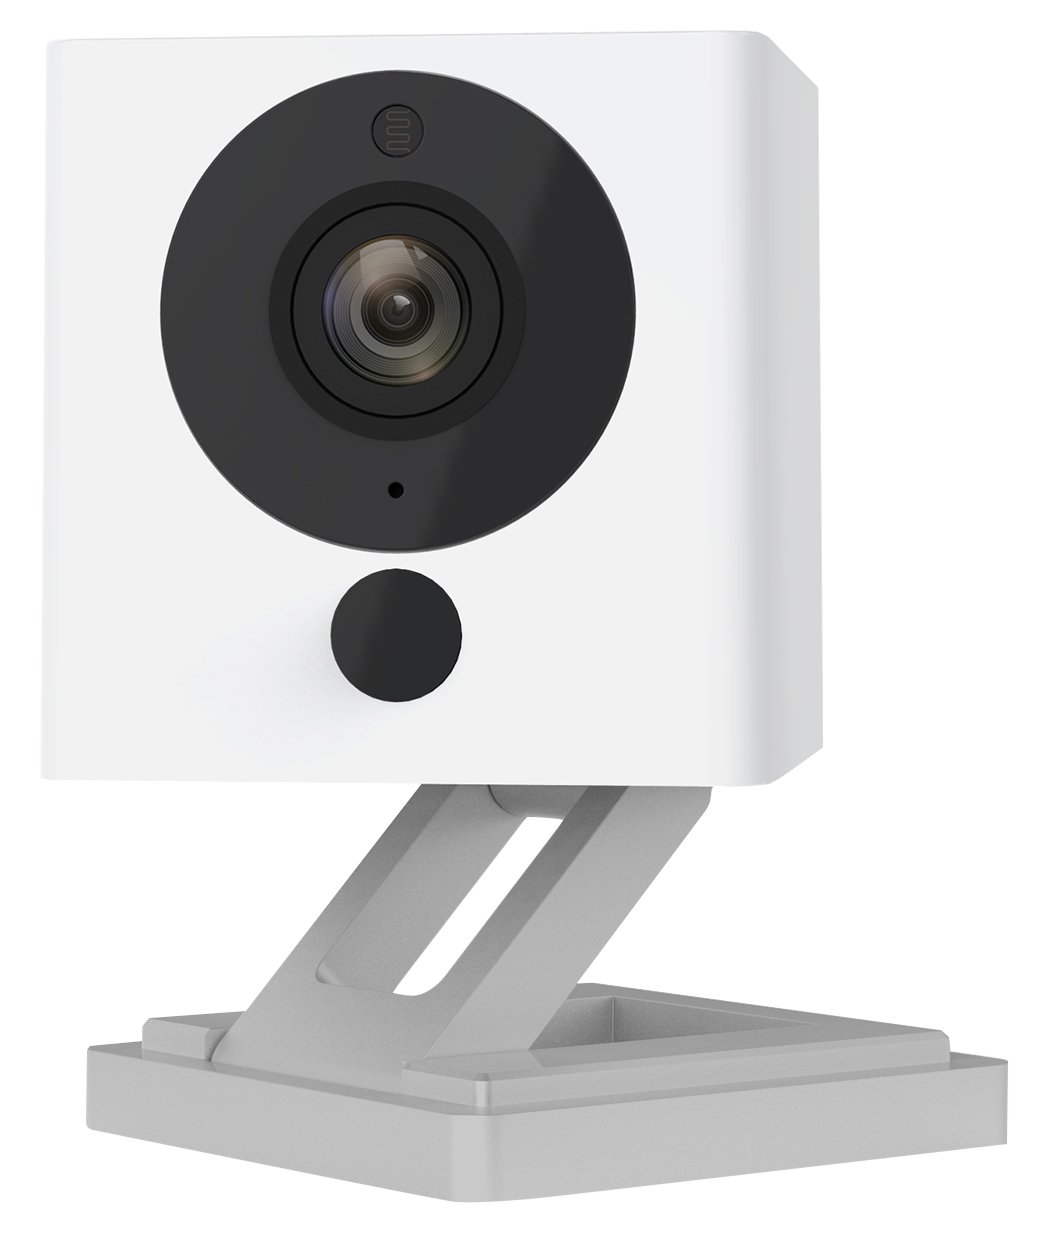 Wyze Cam 1080p HD Indoor Wireless Smart Home Camera with Night Vision, 2-Way Audio, Person Detection